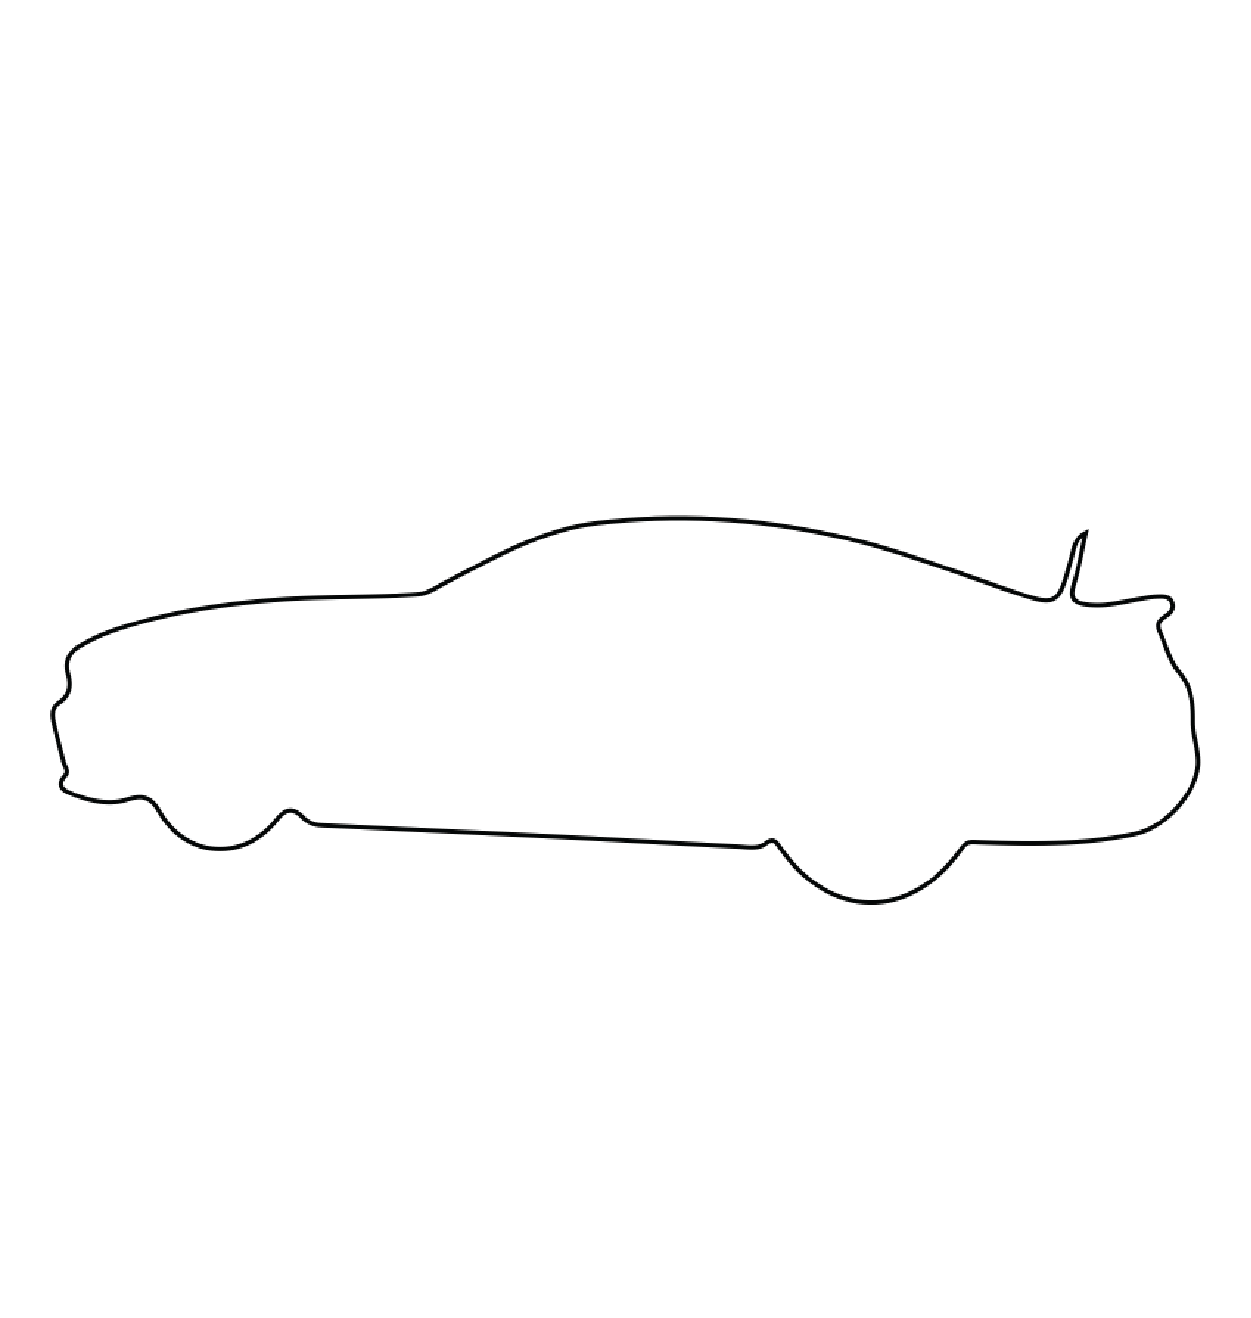 A thin black outline of a car on a white background.